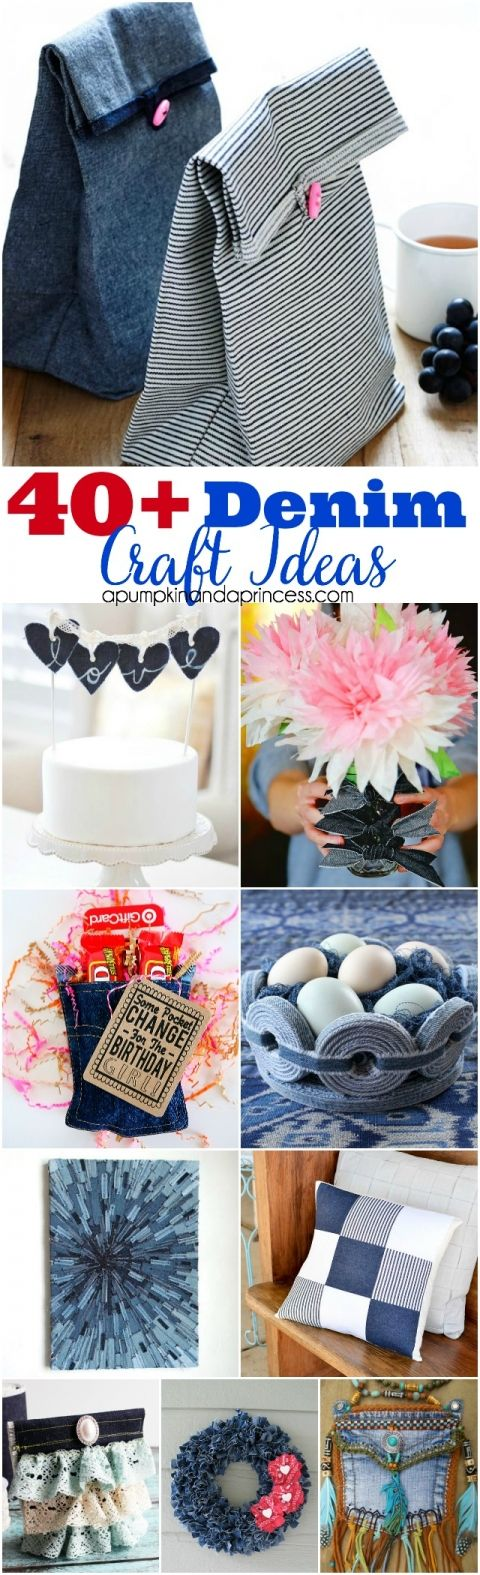 40+ denim craft ideas